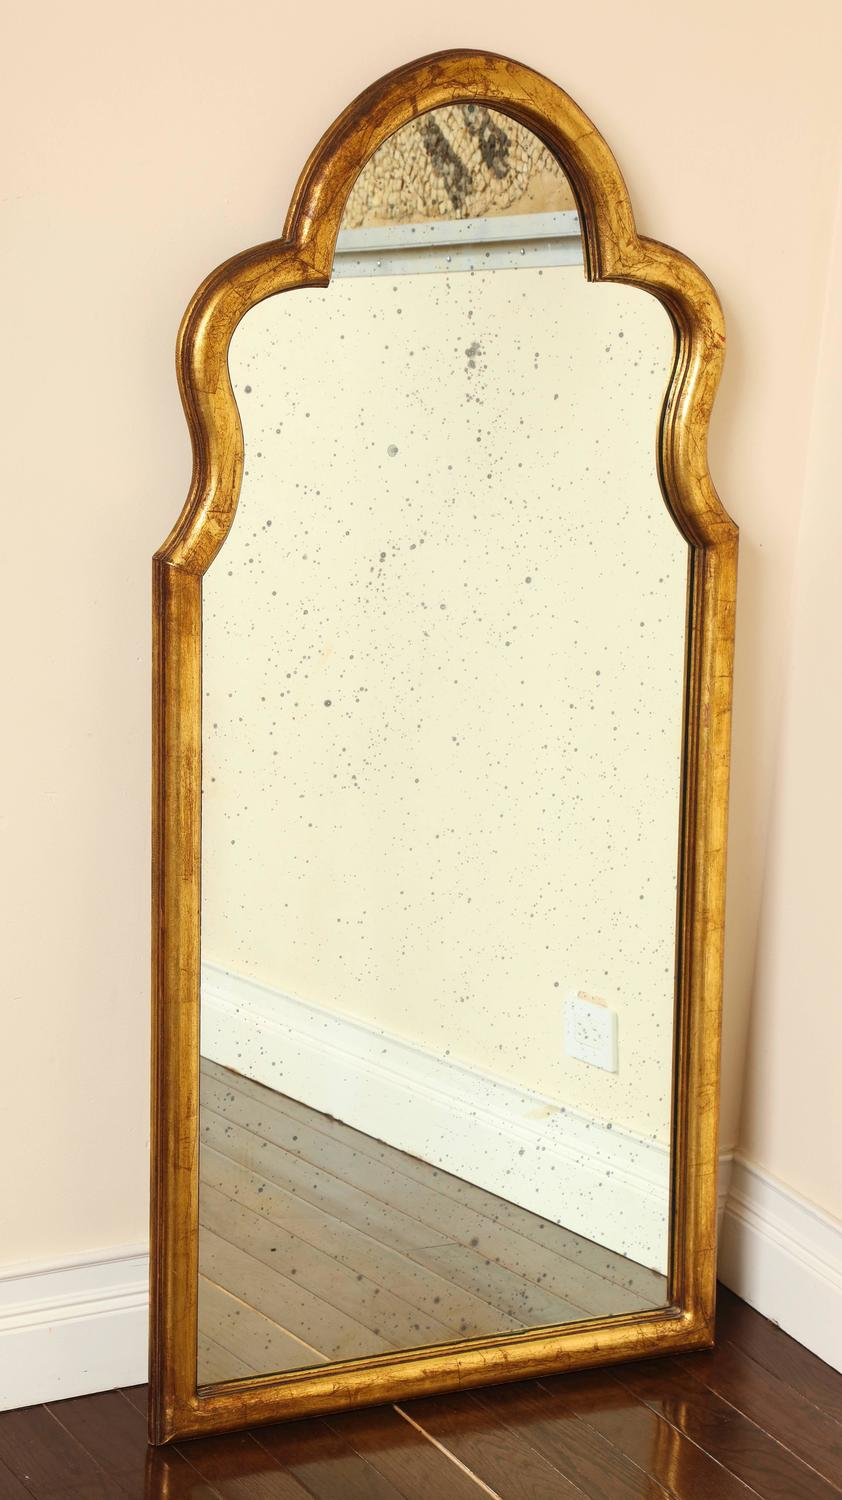 gilded queen anne inspired mirror with antiqued mirrored glass for sale at 1stdibs. Black Bedroom Furniture Sets. Home Design Ideas